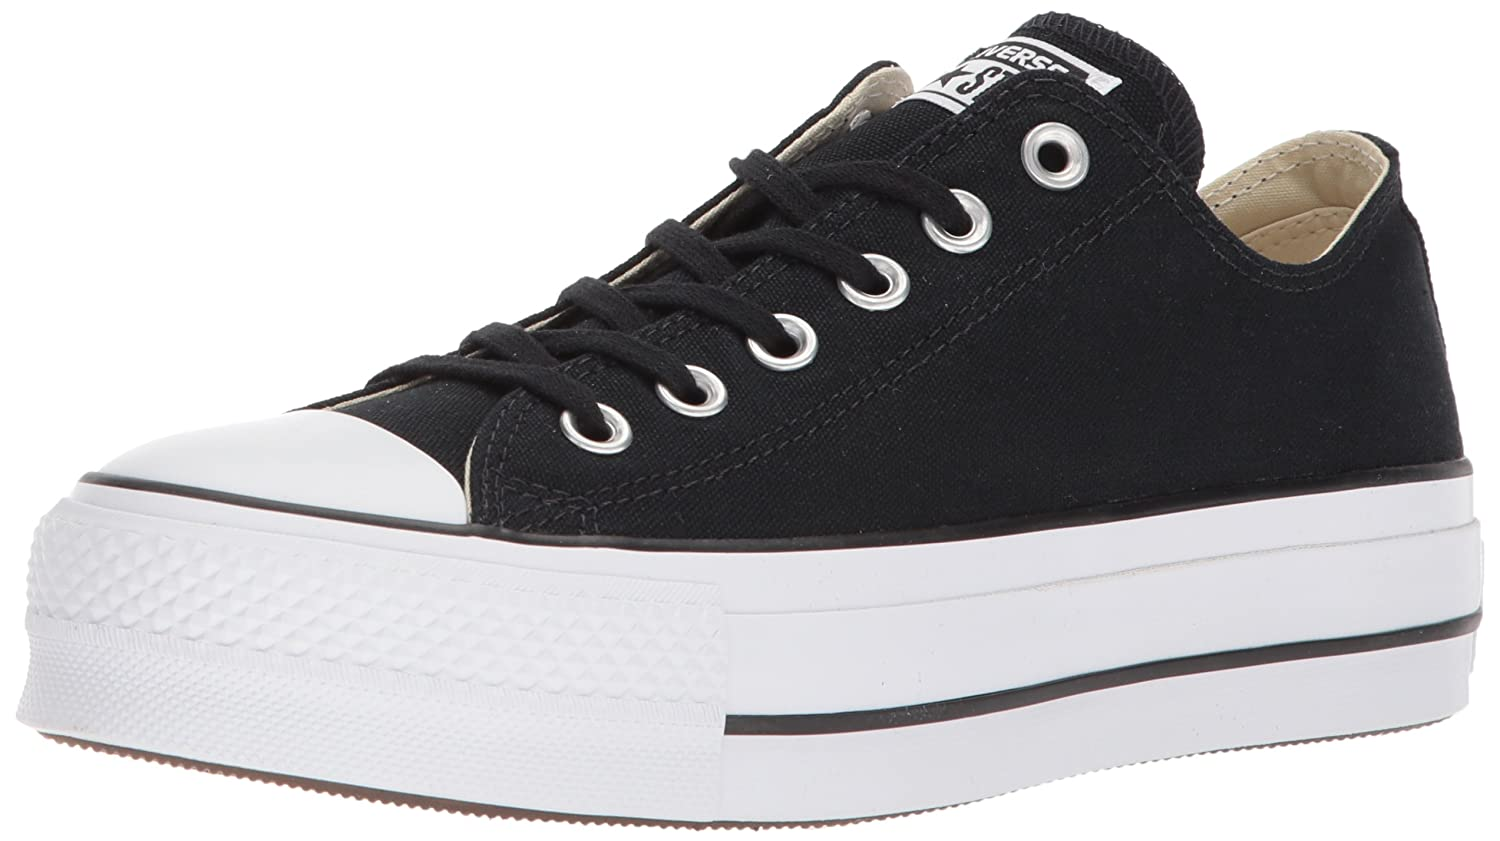 94a01a6c50 Amazon.com | Converse Women's Lift Canvas Low Top Sneaker | Fashion Sneakers